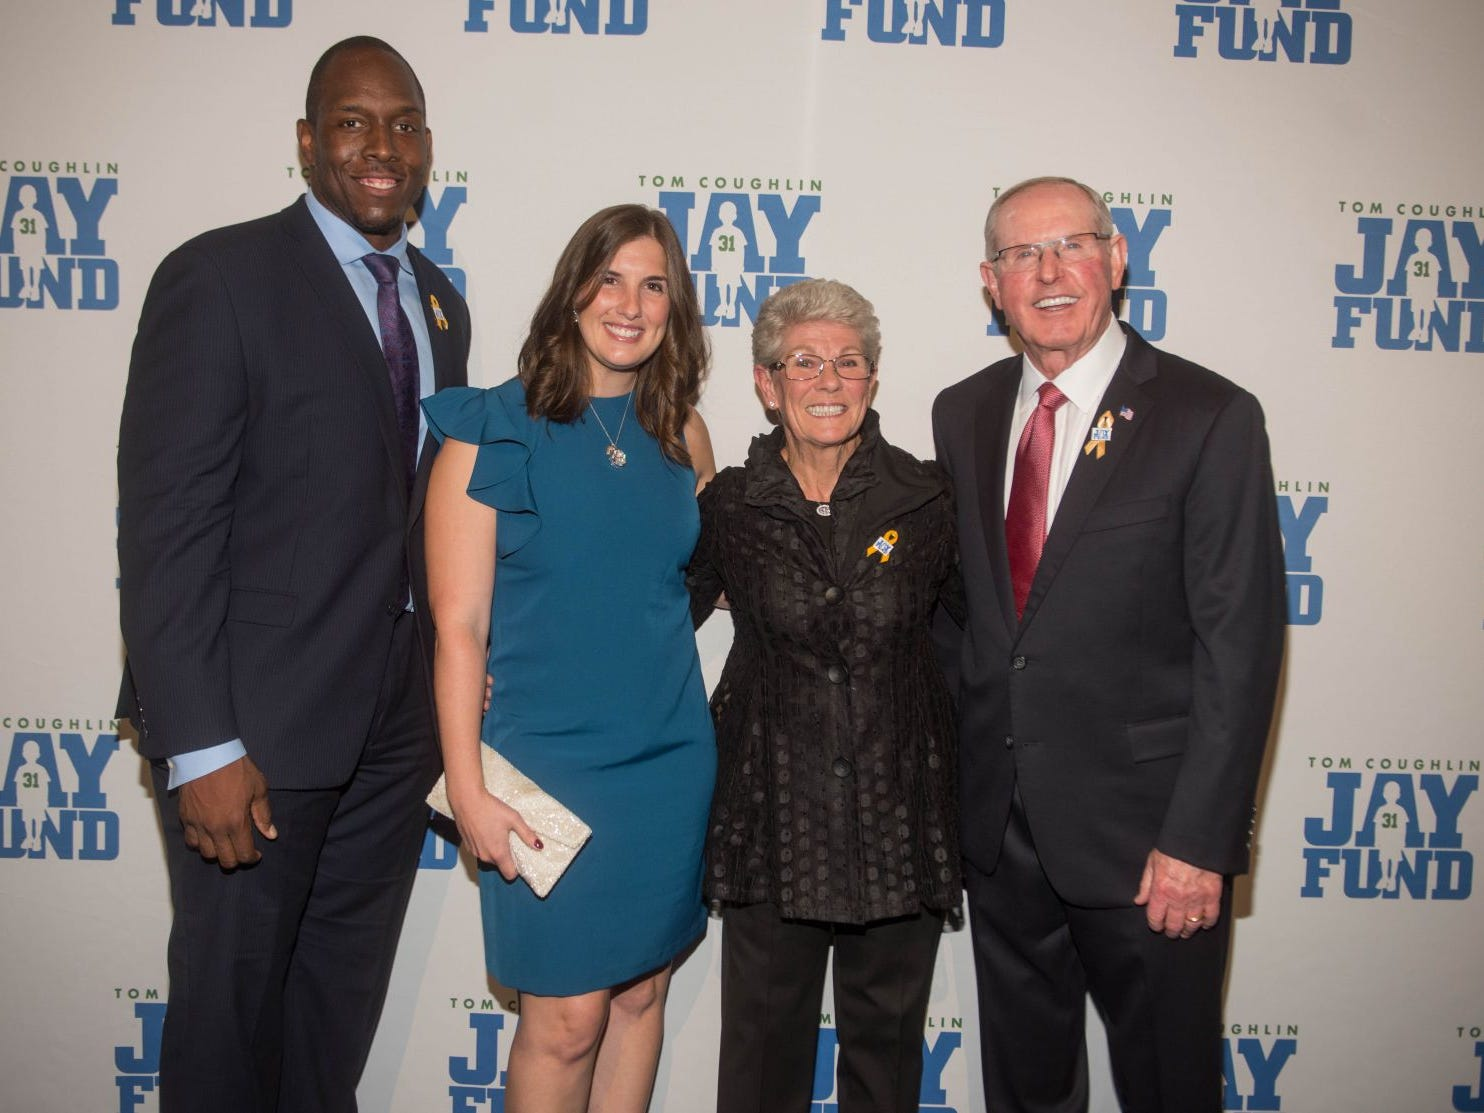 Kevin Boothe, Rosalie Boothe, Judy Coughlin and Tom Coughlin. The 14th annual Jay Fund Champions for Children Gala was held at Cipriani 42nd Street. 09/21/2018